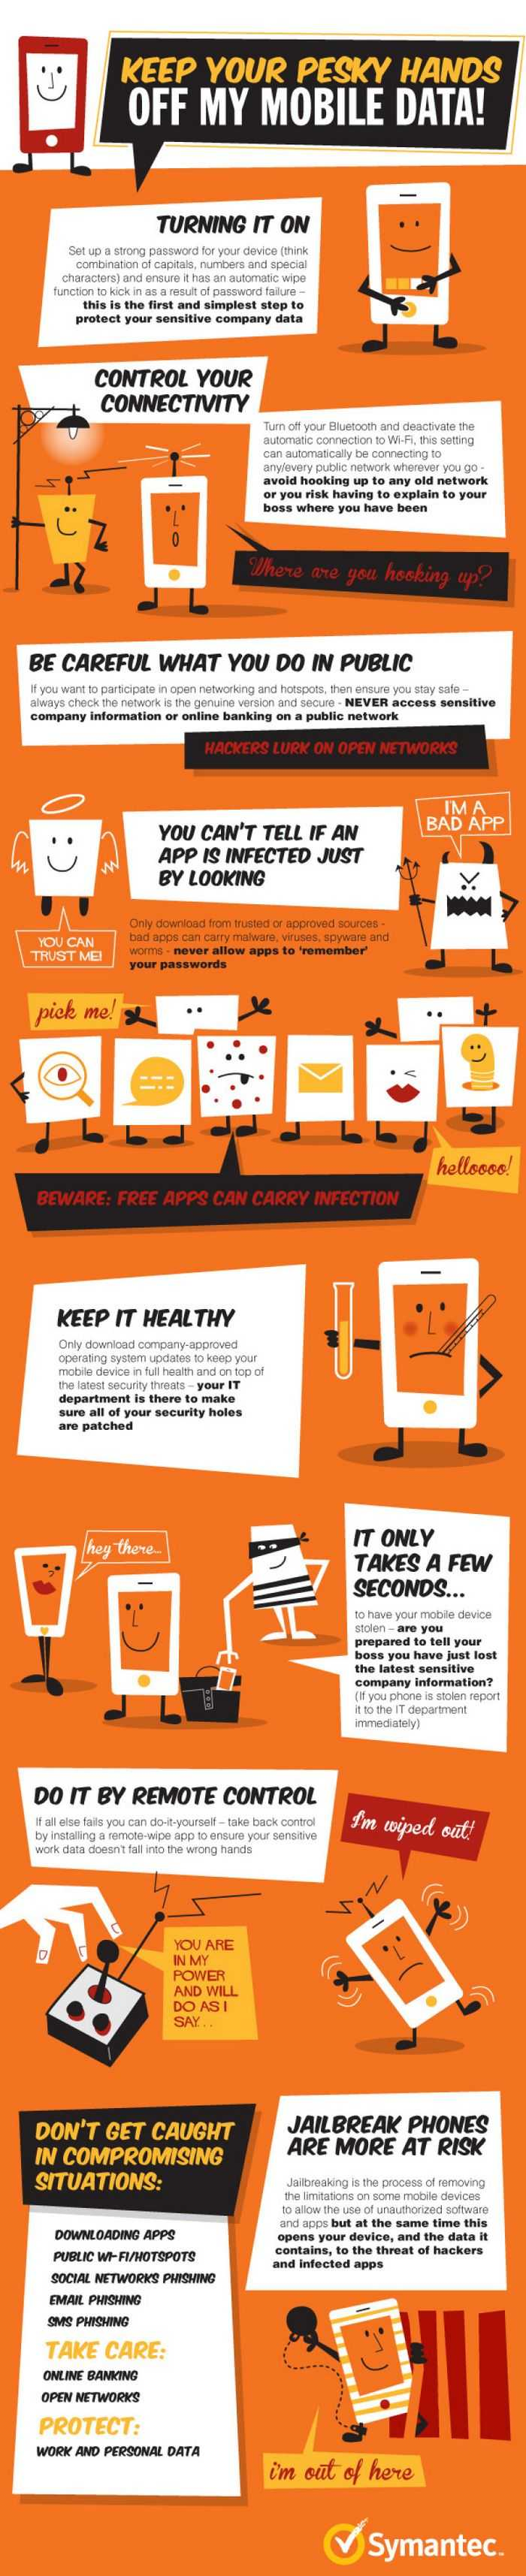 How To Keep Your Smartphone Safe & Secure Infographic